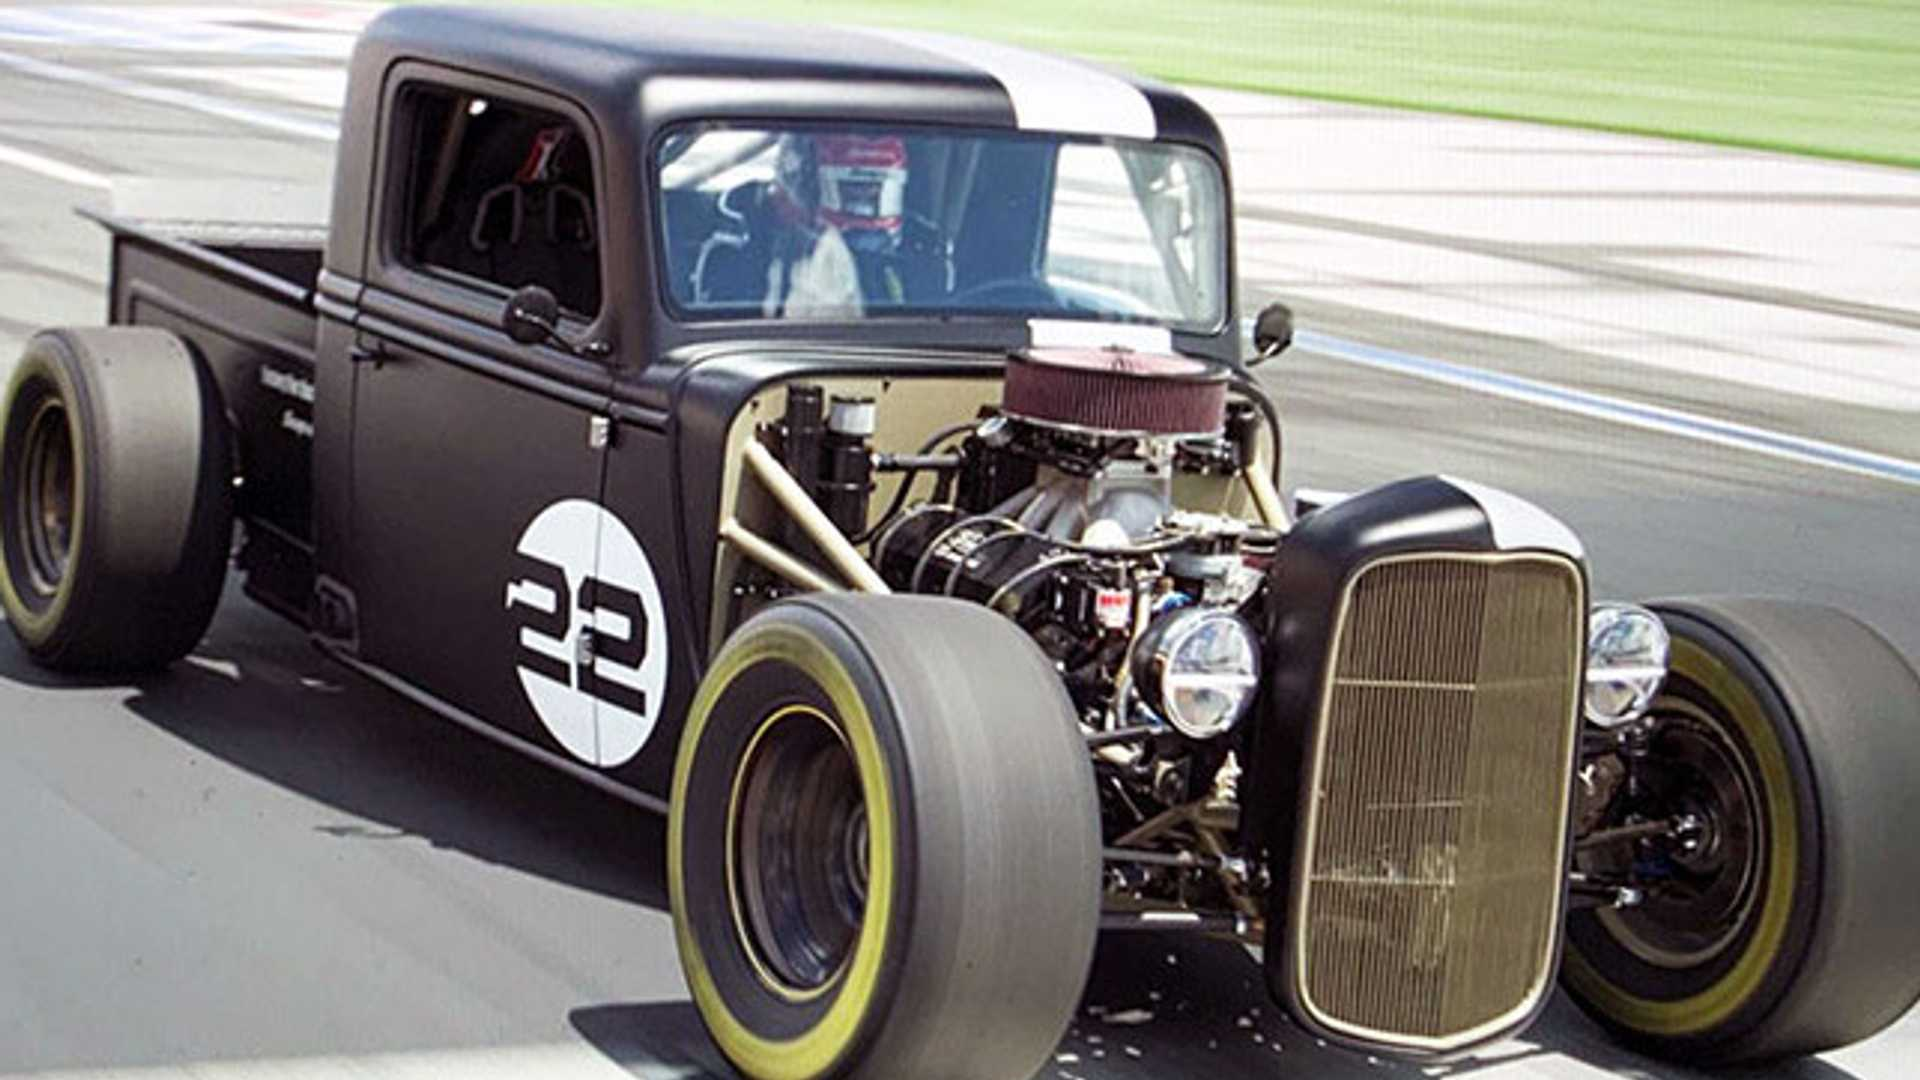 Joey Lagano Drifts The Charlotte Roval In An 800-HP, 1935 Ford Truck